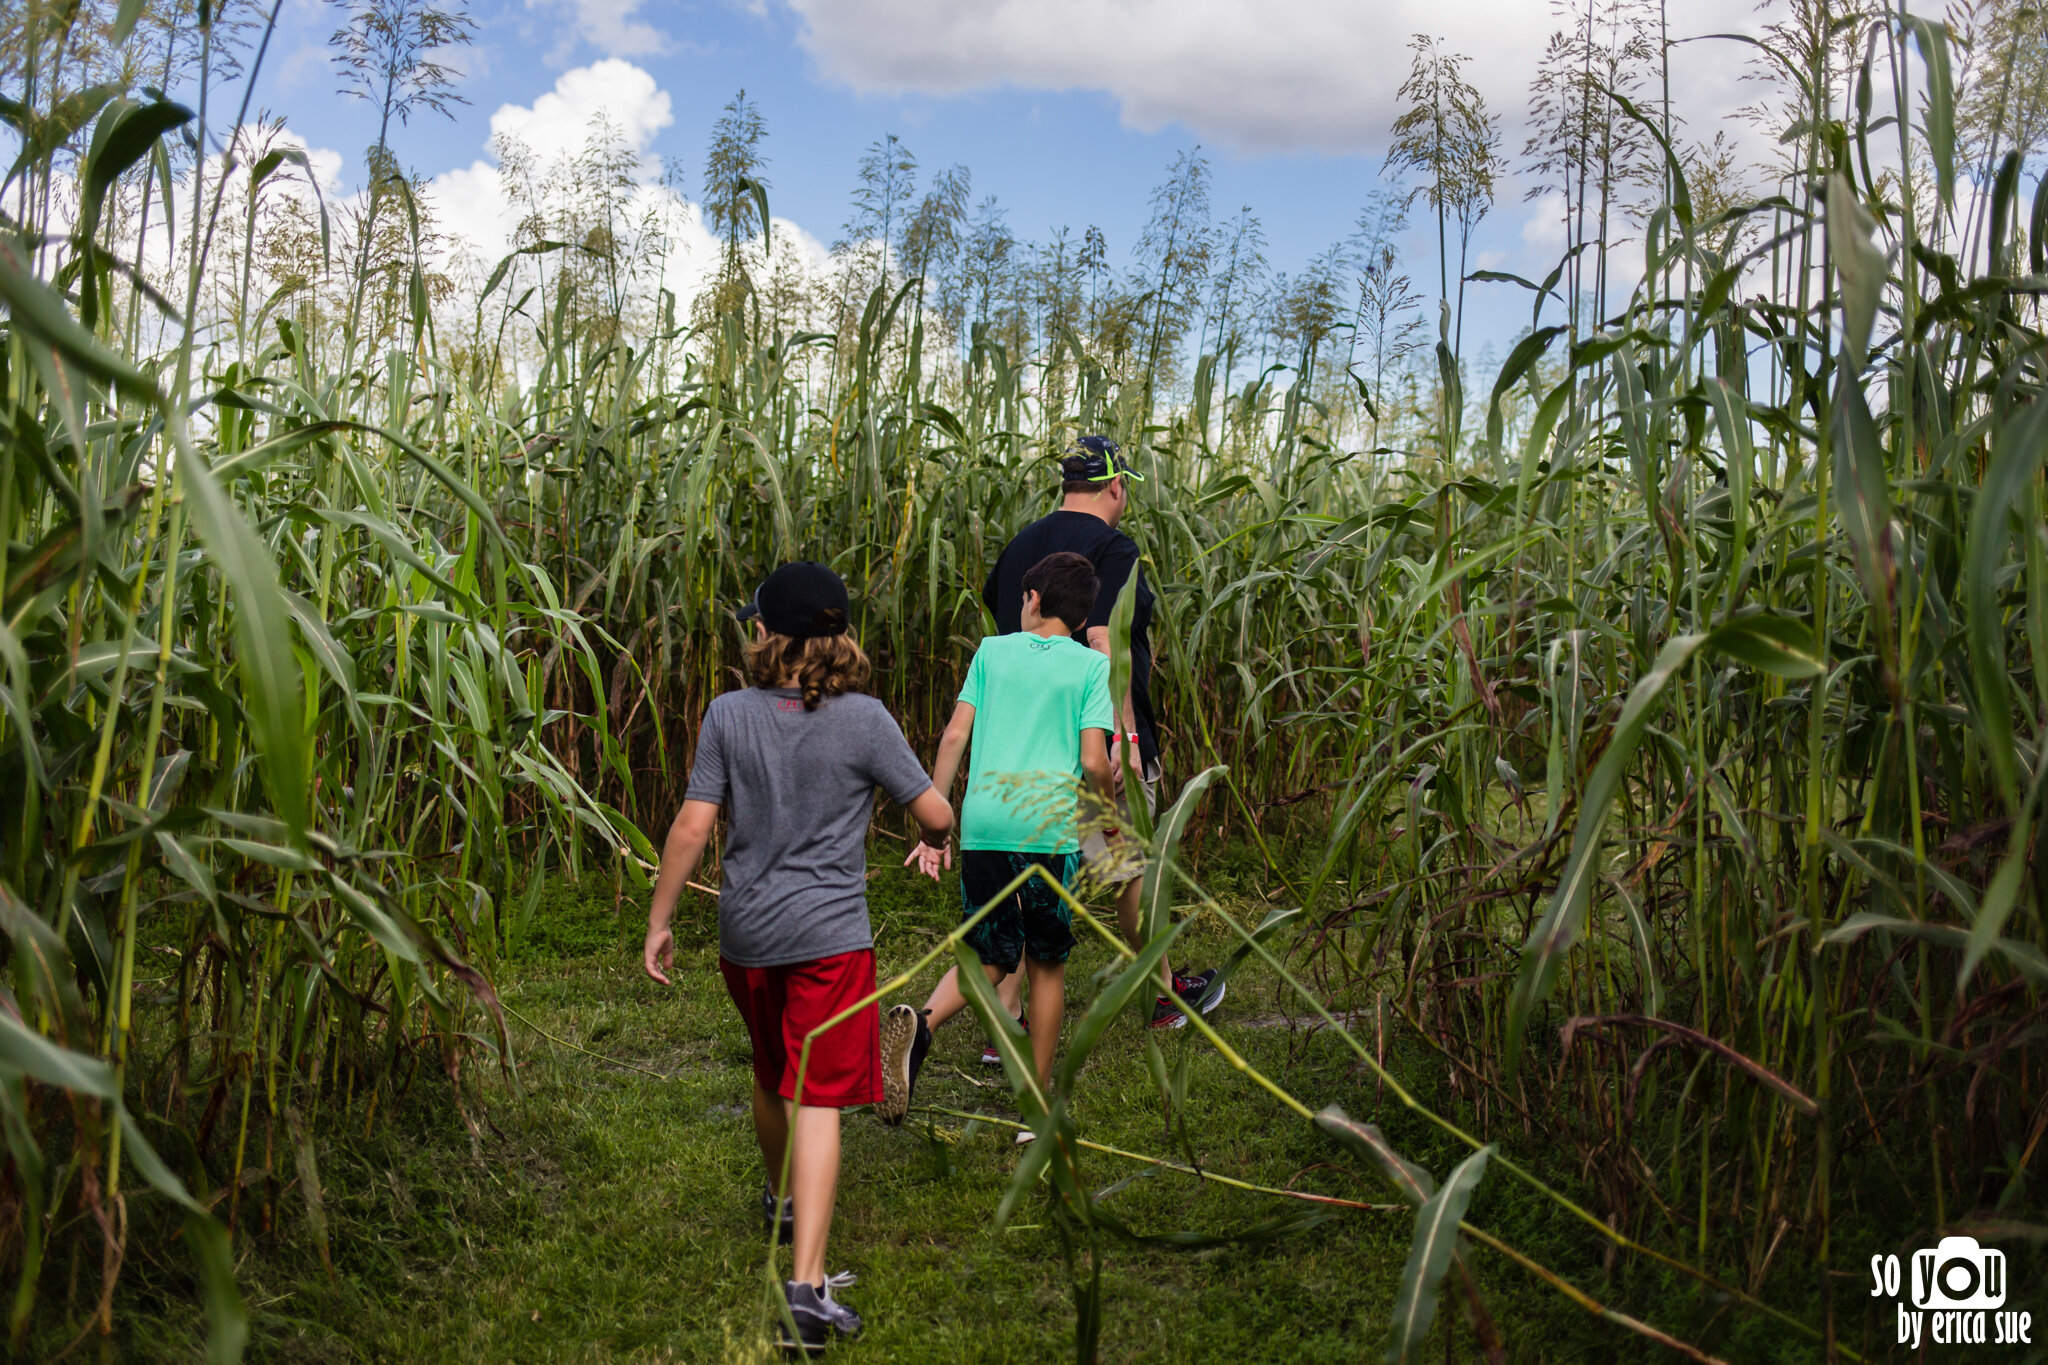 so-you-by-erica-sue-disney-photography-family-mickey-not-so-scary-partin-ranch-corn-maze-old-town-orlando-4265.jpg